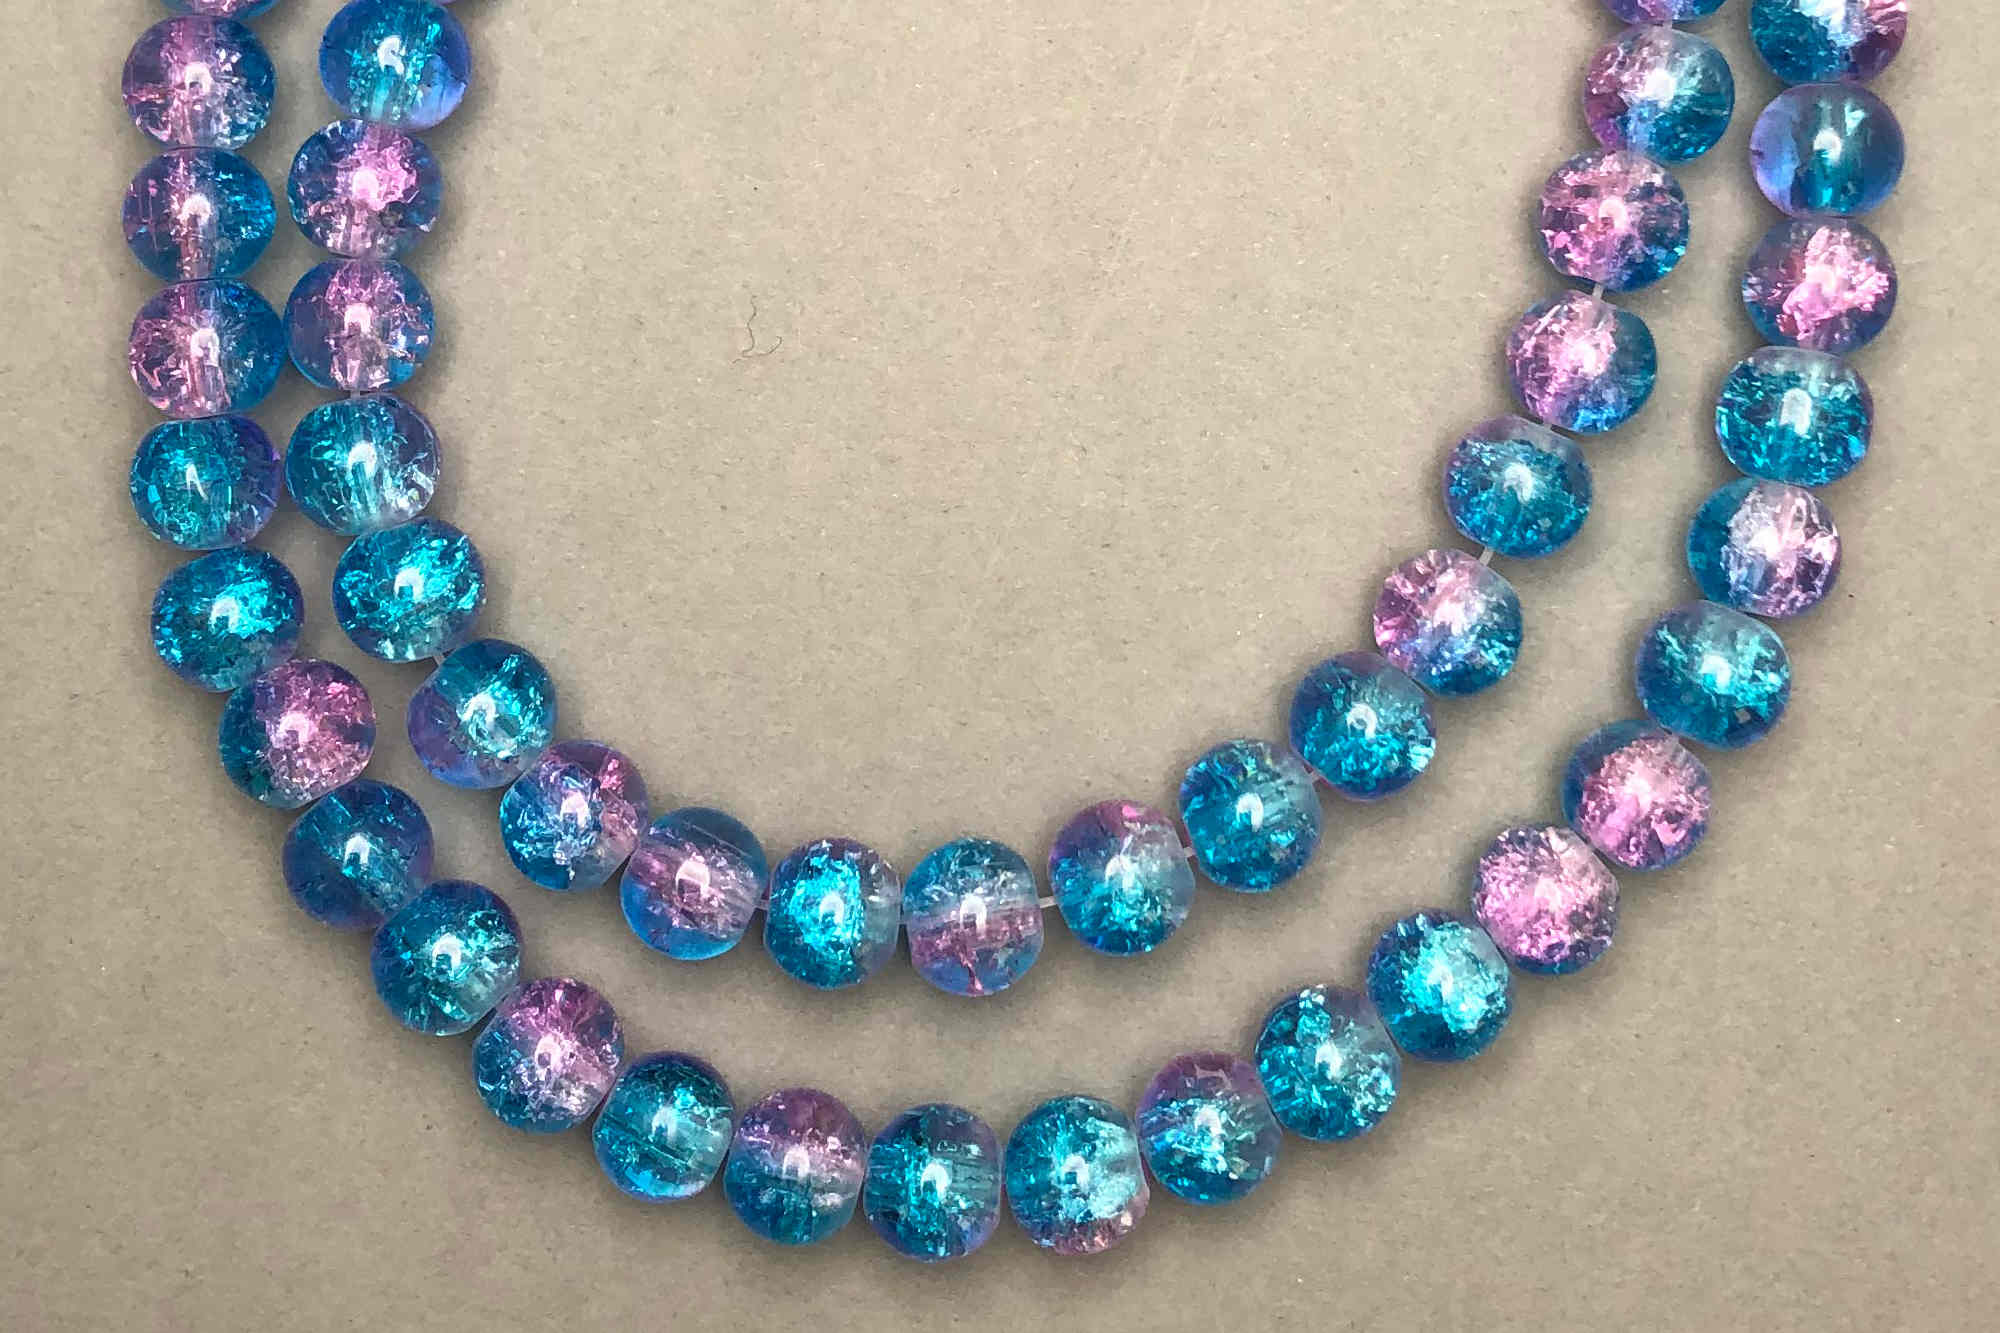 Turquoise/Pink Crackle Glass Beads